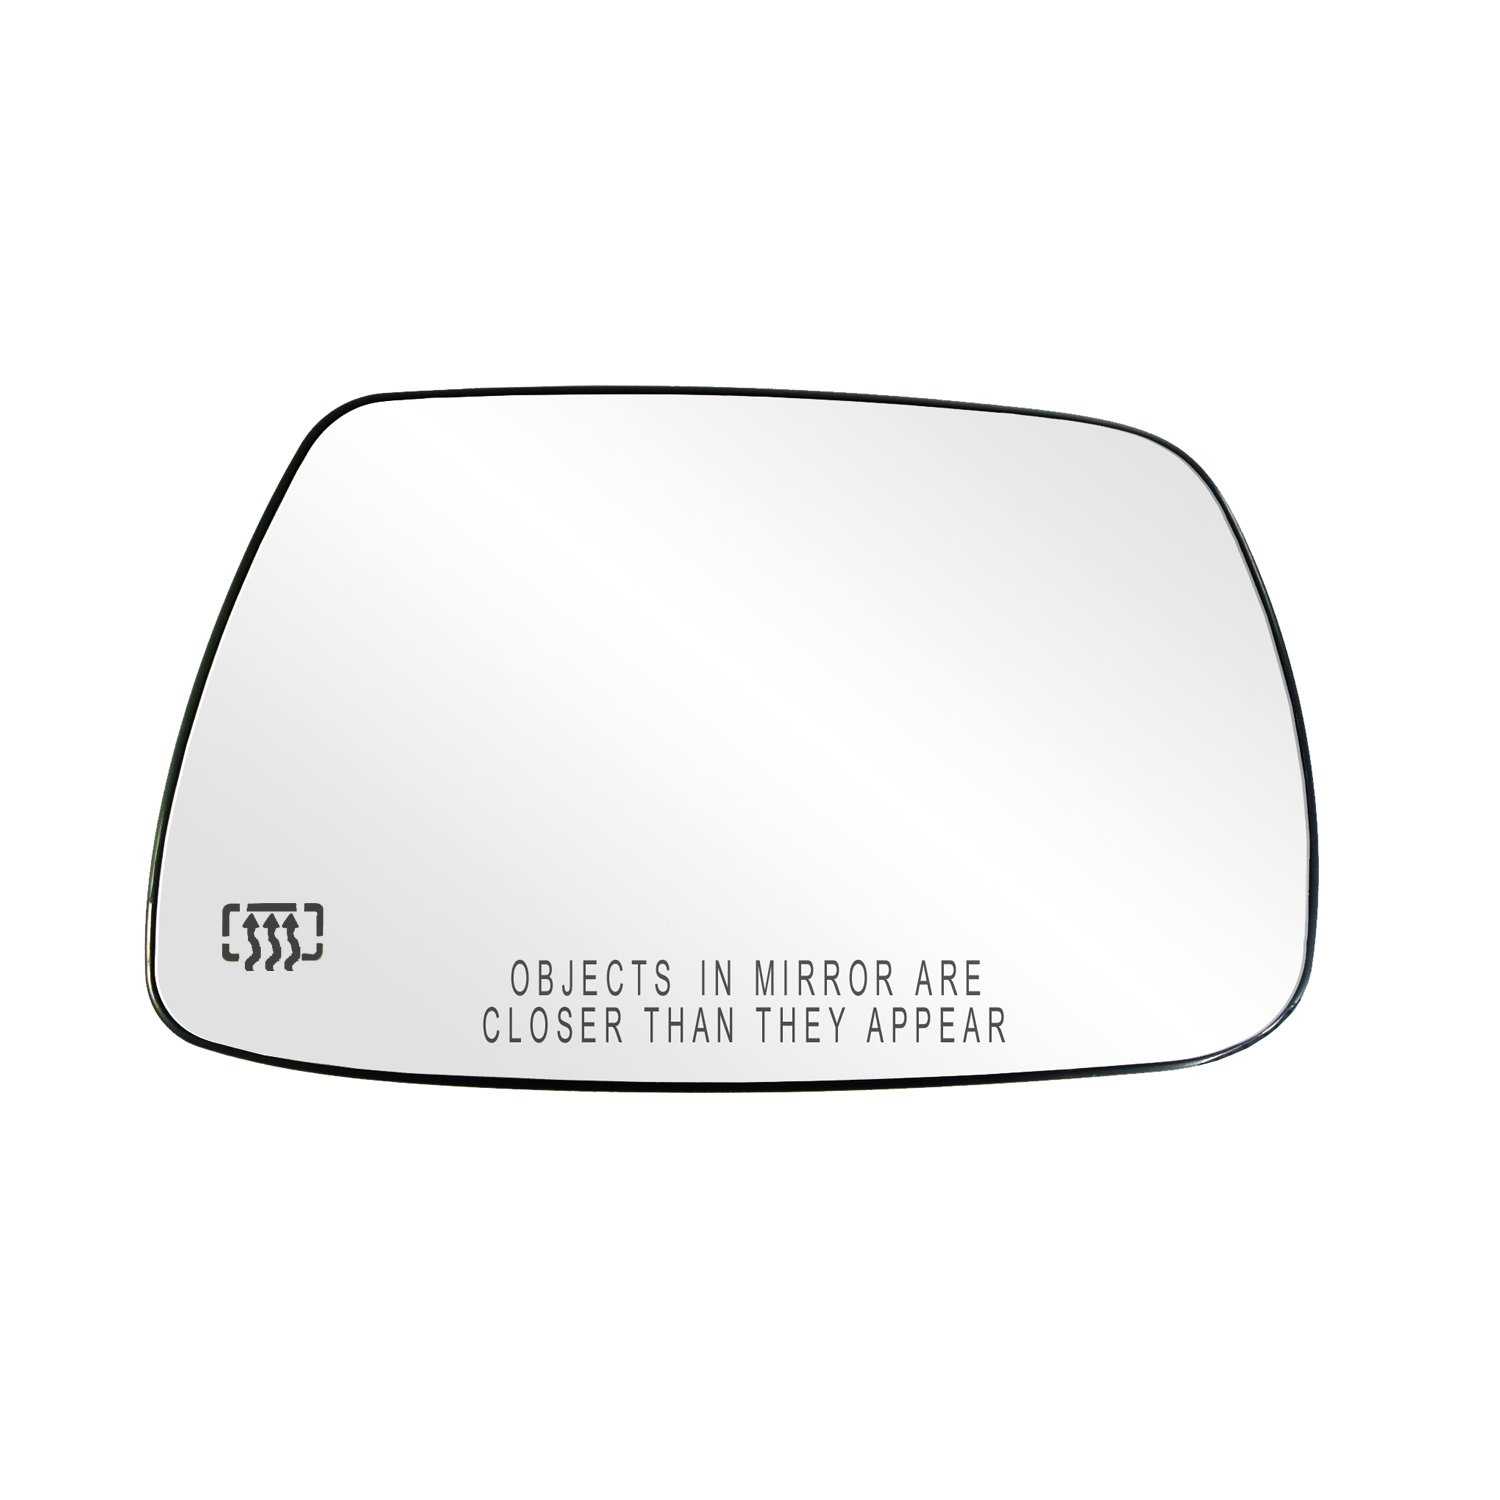 Fit System 33265 Jeep Grand Cherokee Left Side Heated Wrangler Rear Window Defrost Power Replacement Mirror Glass With Backing Plate Automotive